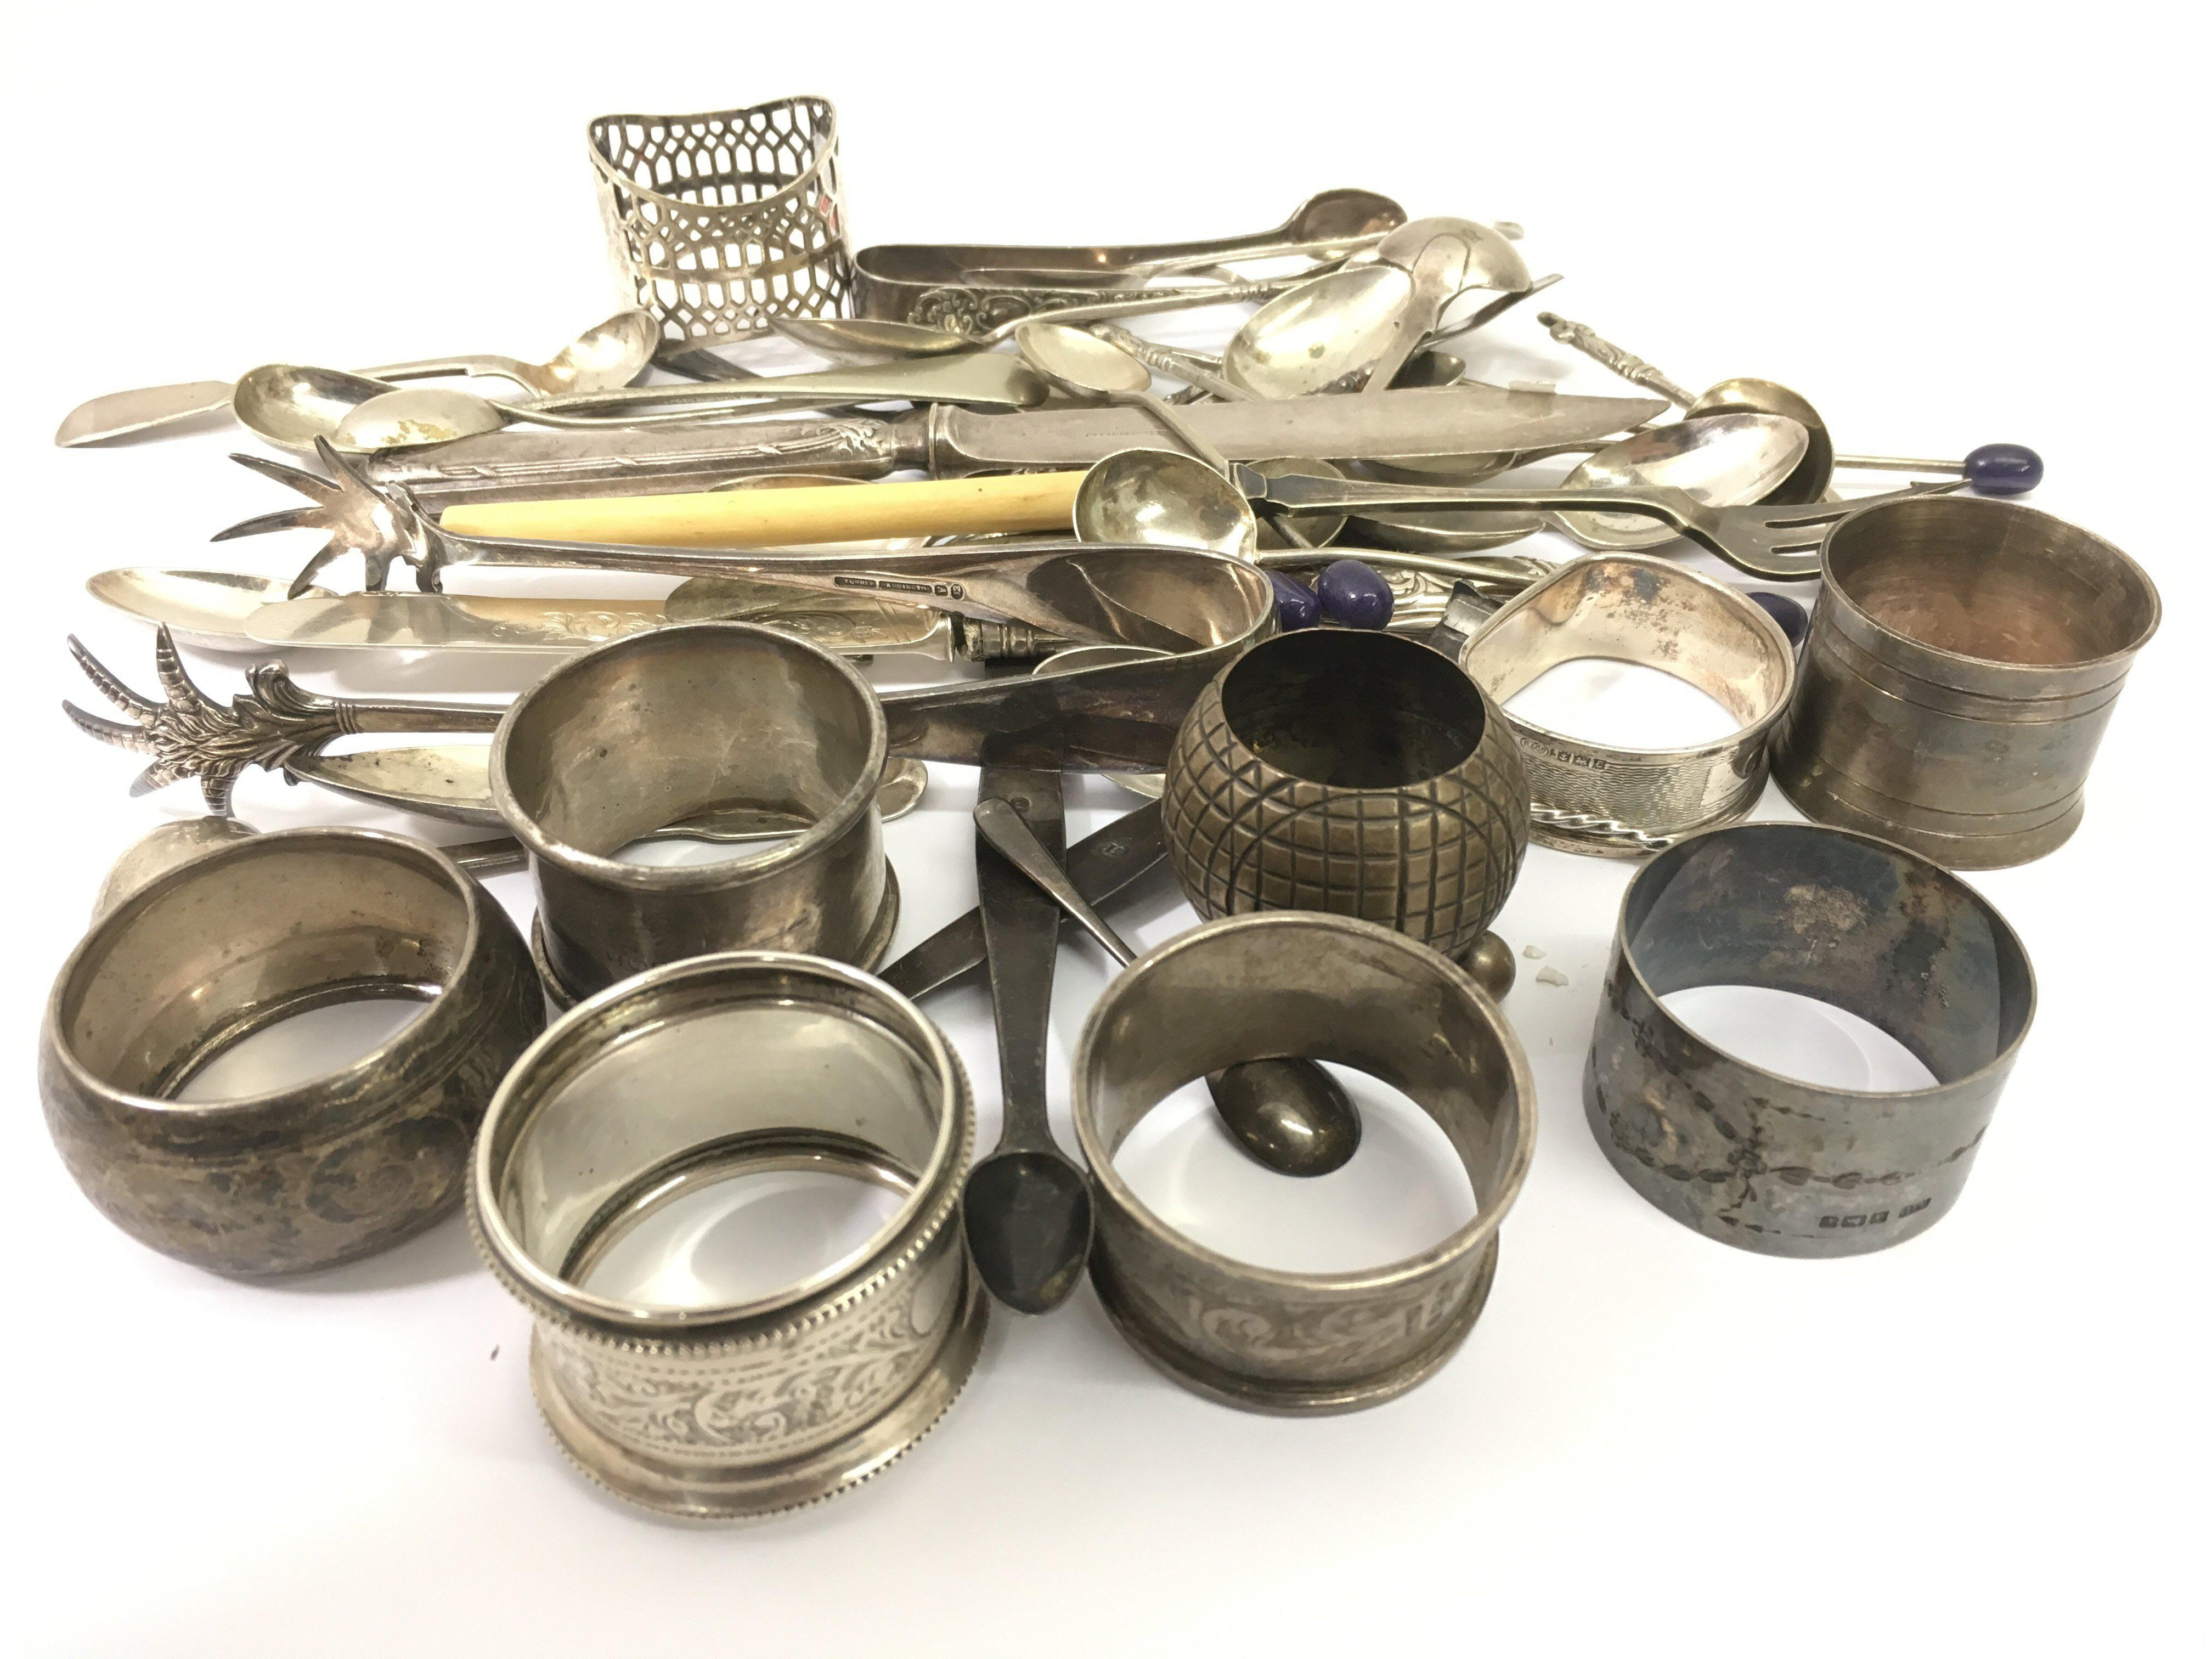 Lot 526 - A bag of silver and plated odds. Silver weight app